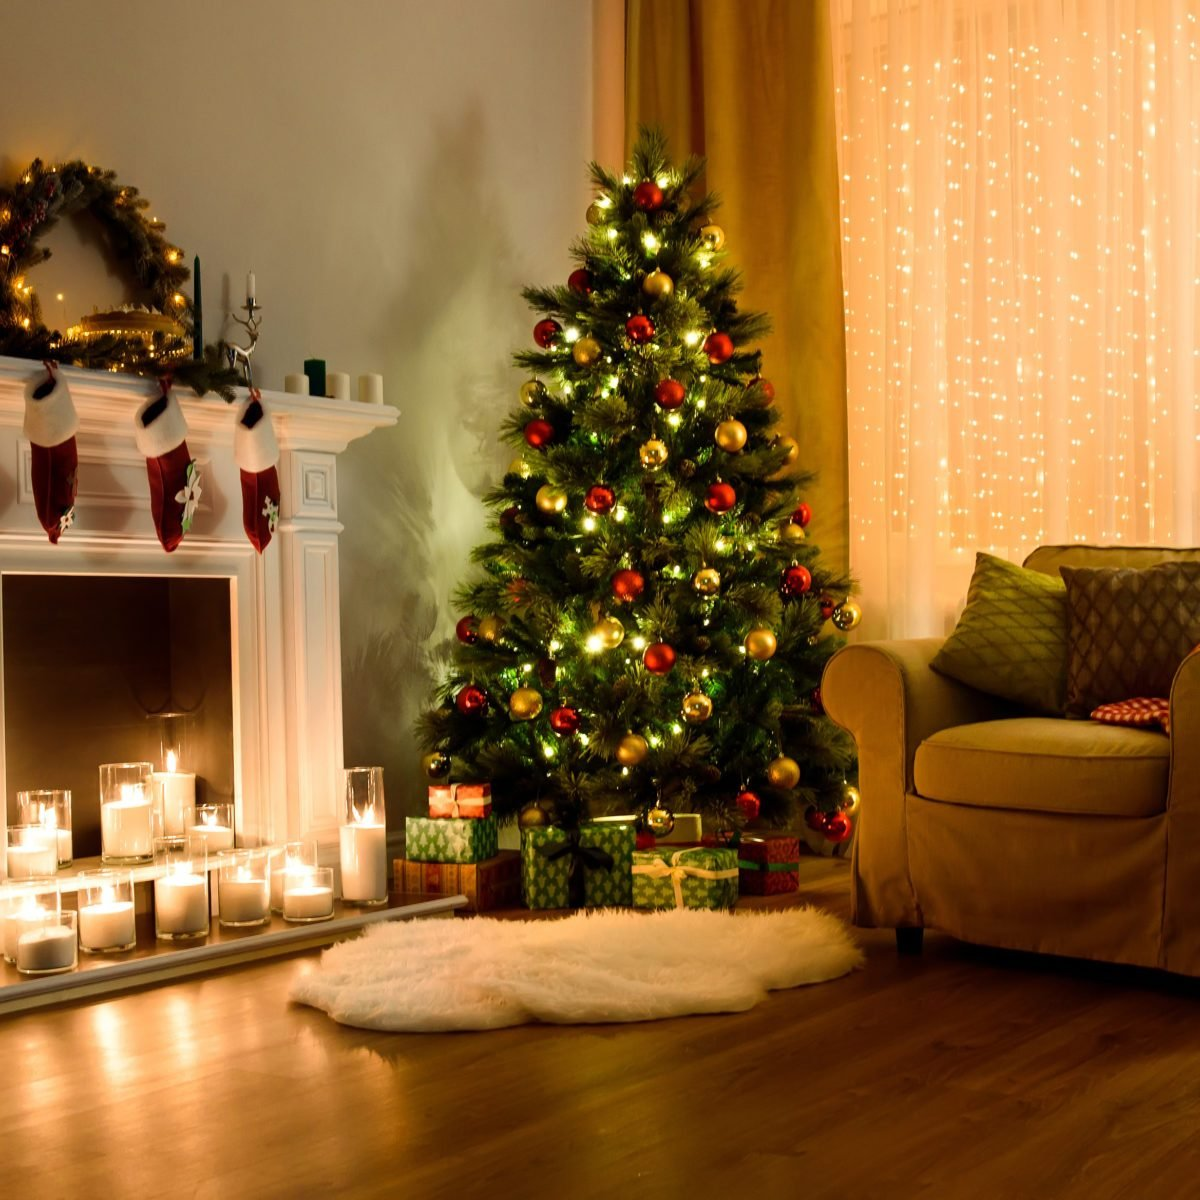 Why Christmas Trees: Flipboard: Why Do We Put Up Christmas Trees?